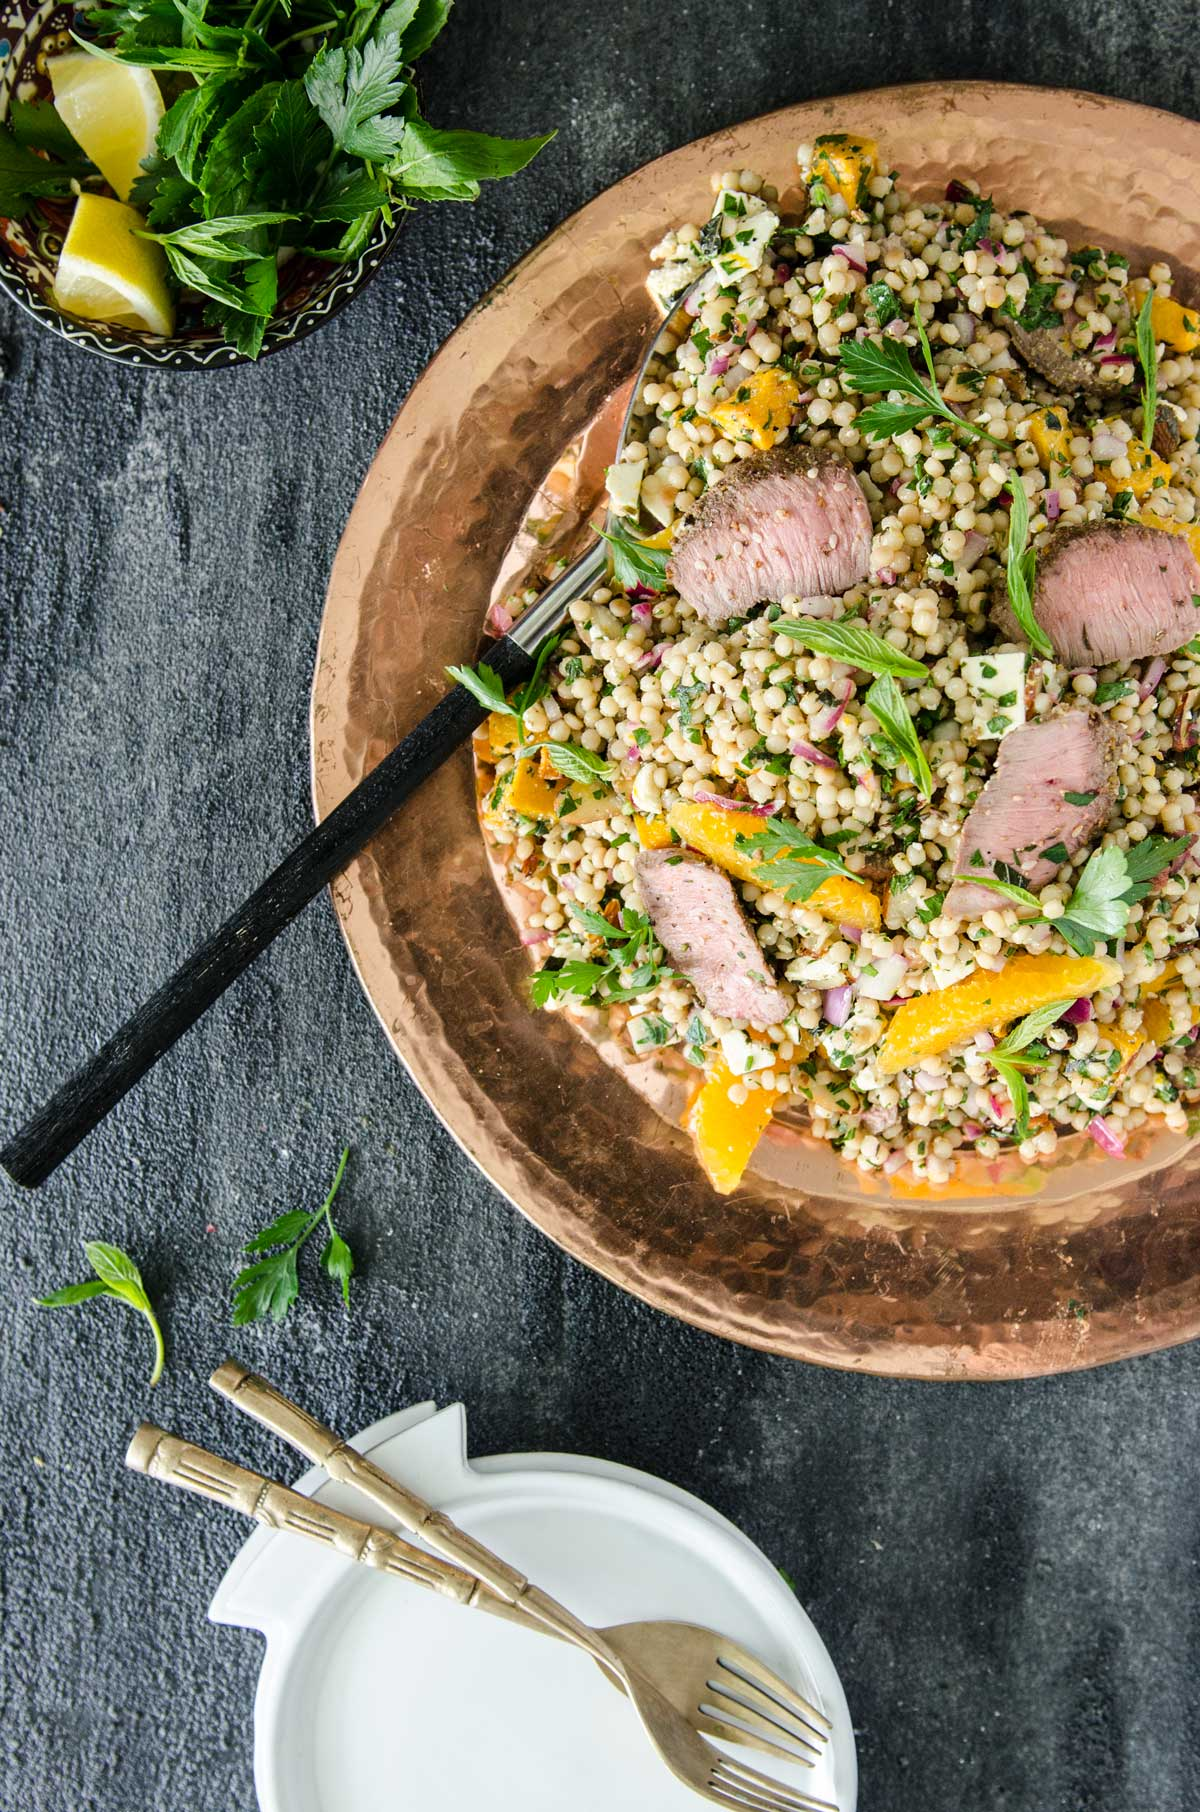 Choosing The Right Knife for the Task | Cous Cous, Pumpkin and Lamb Salad - Chew Town Food Blog